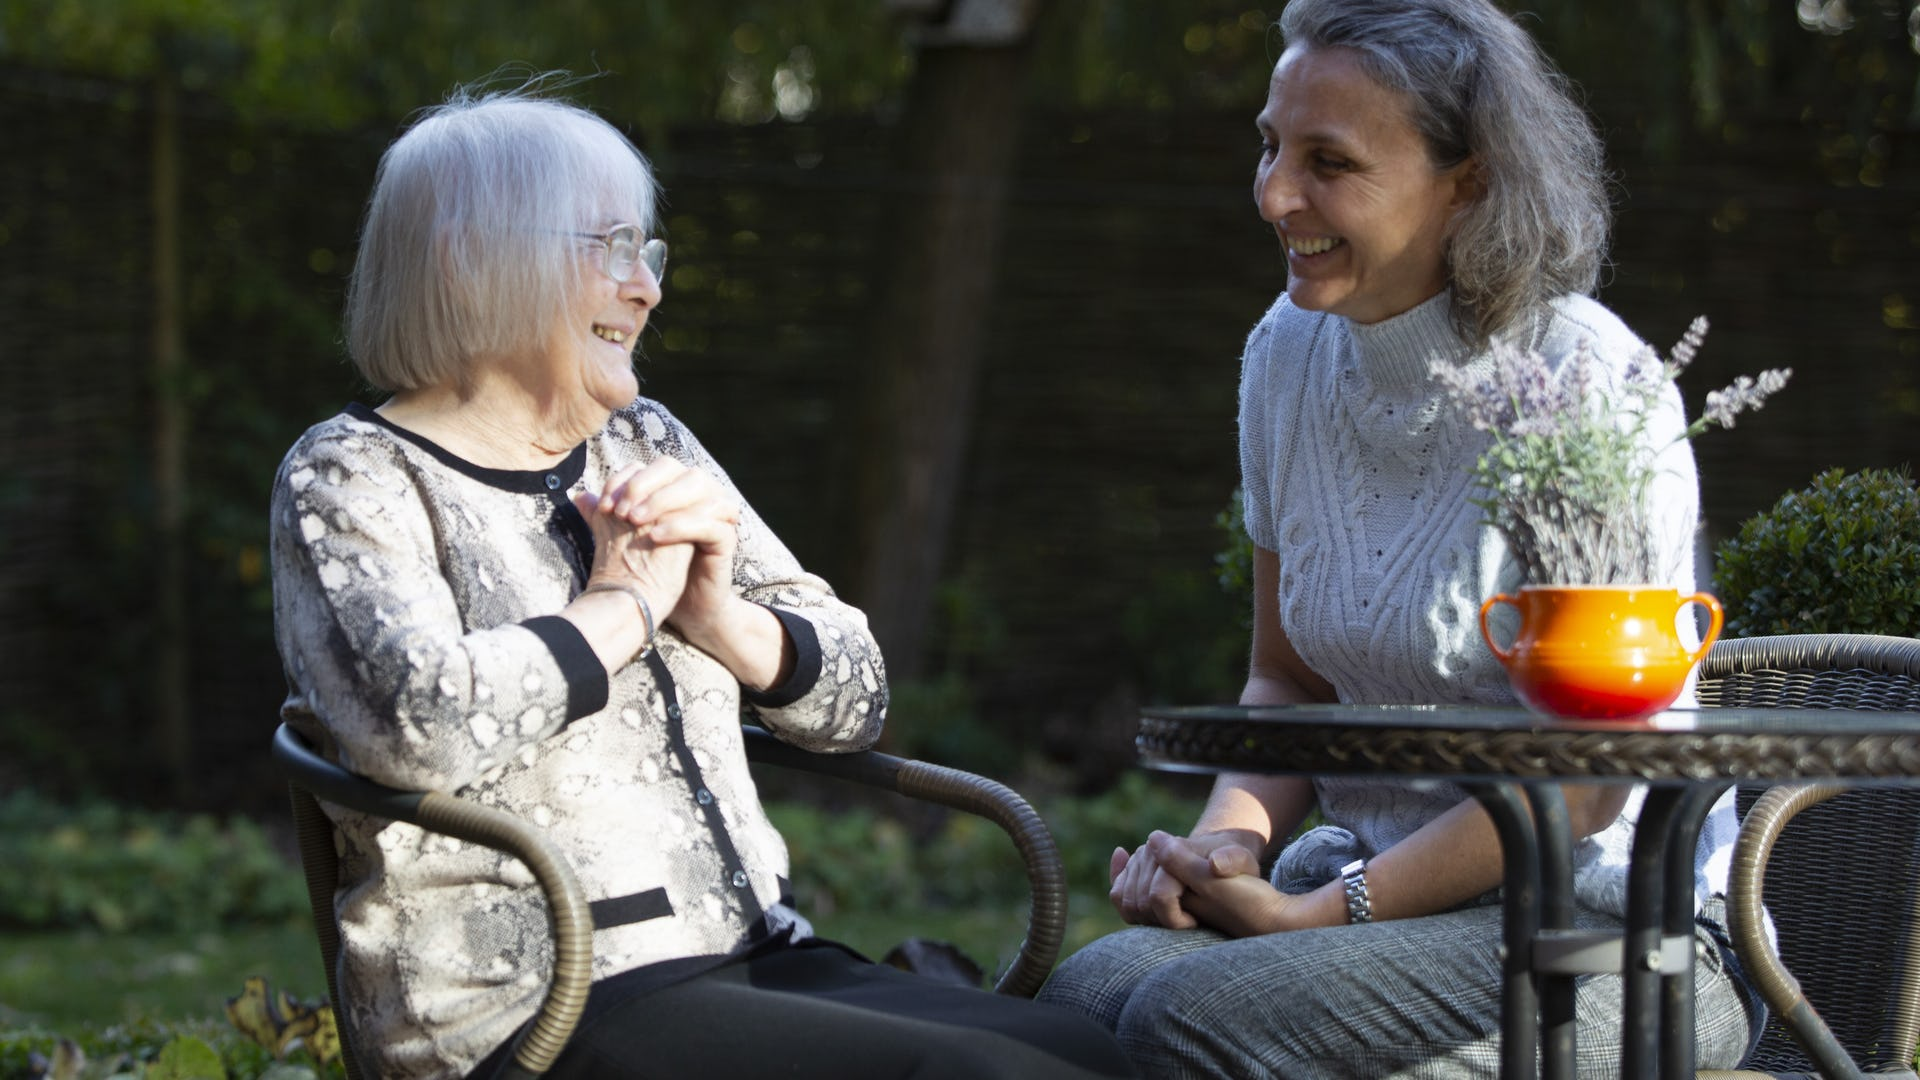 Carer and elderly lady sitting in the garden